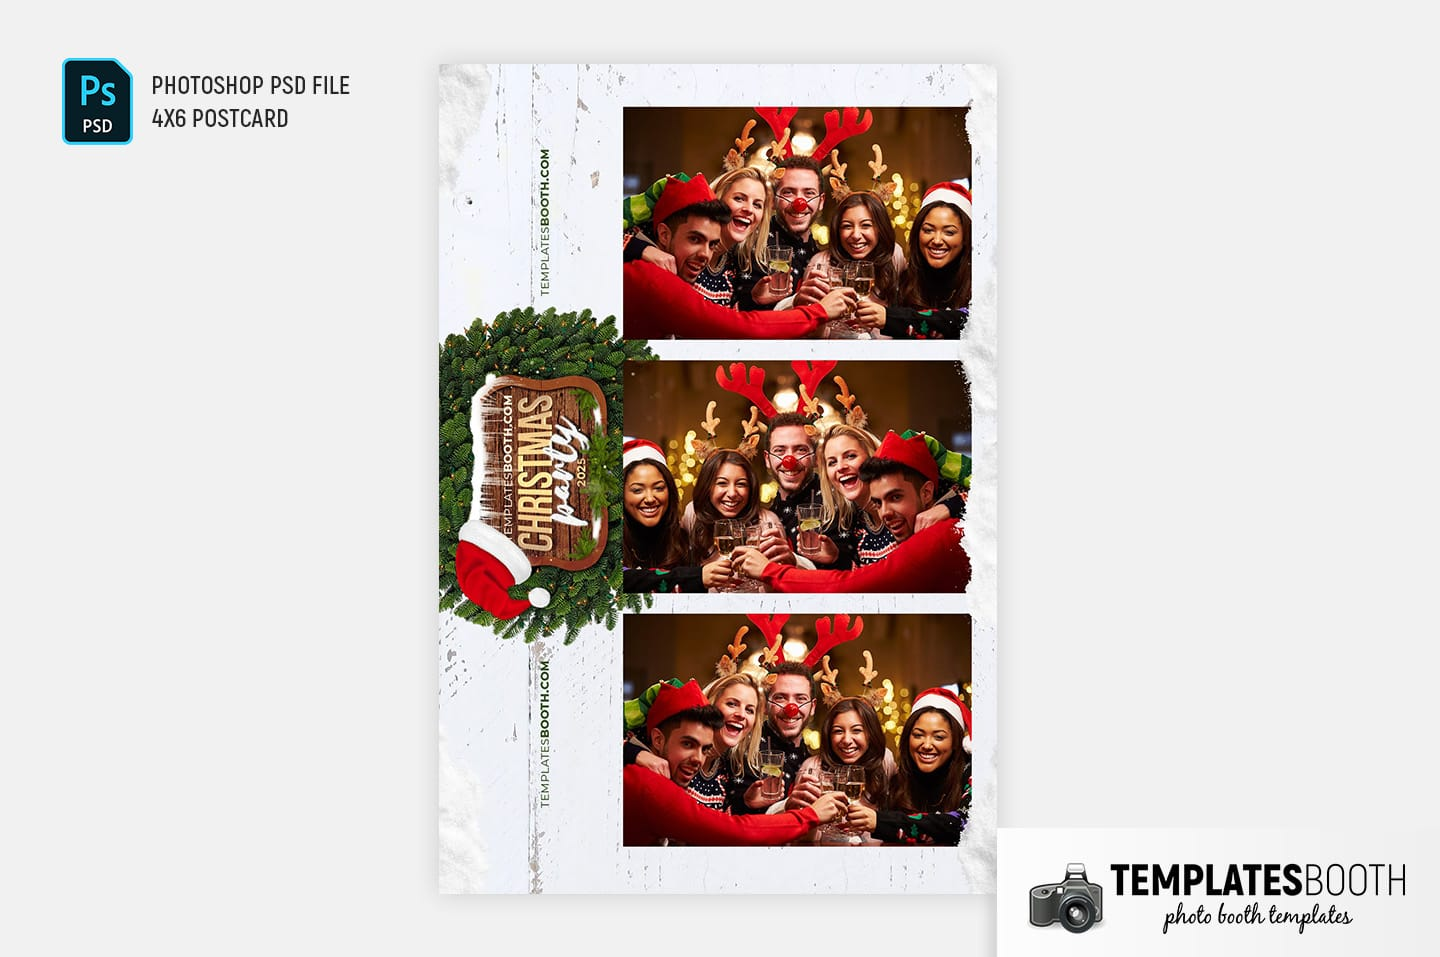 Festive Christmas Photo Booth Template (4x6 postcard)